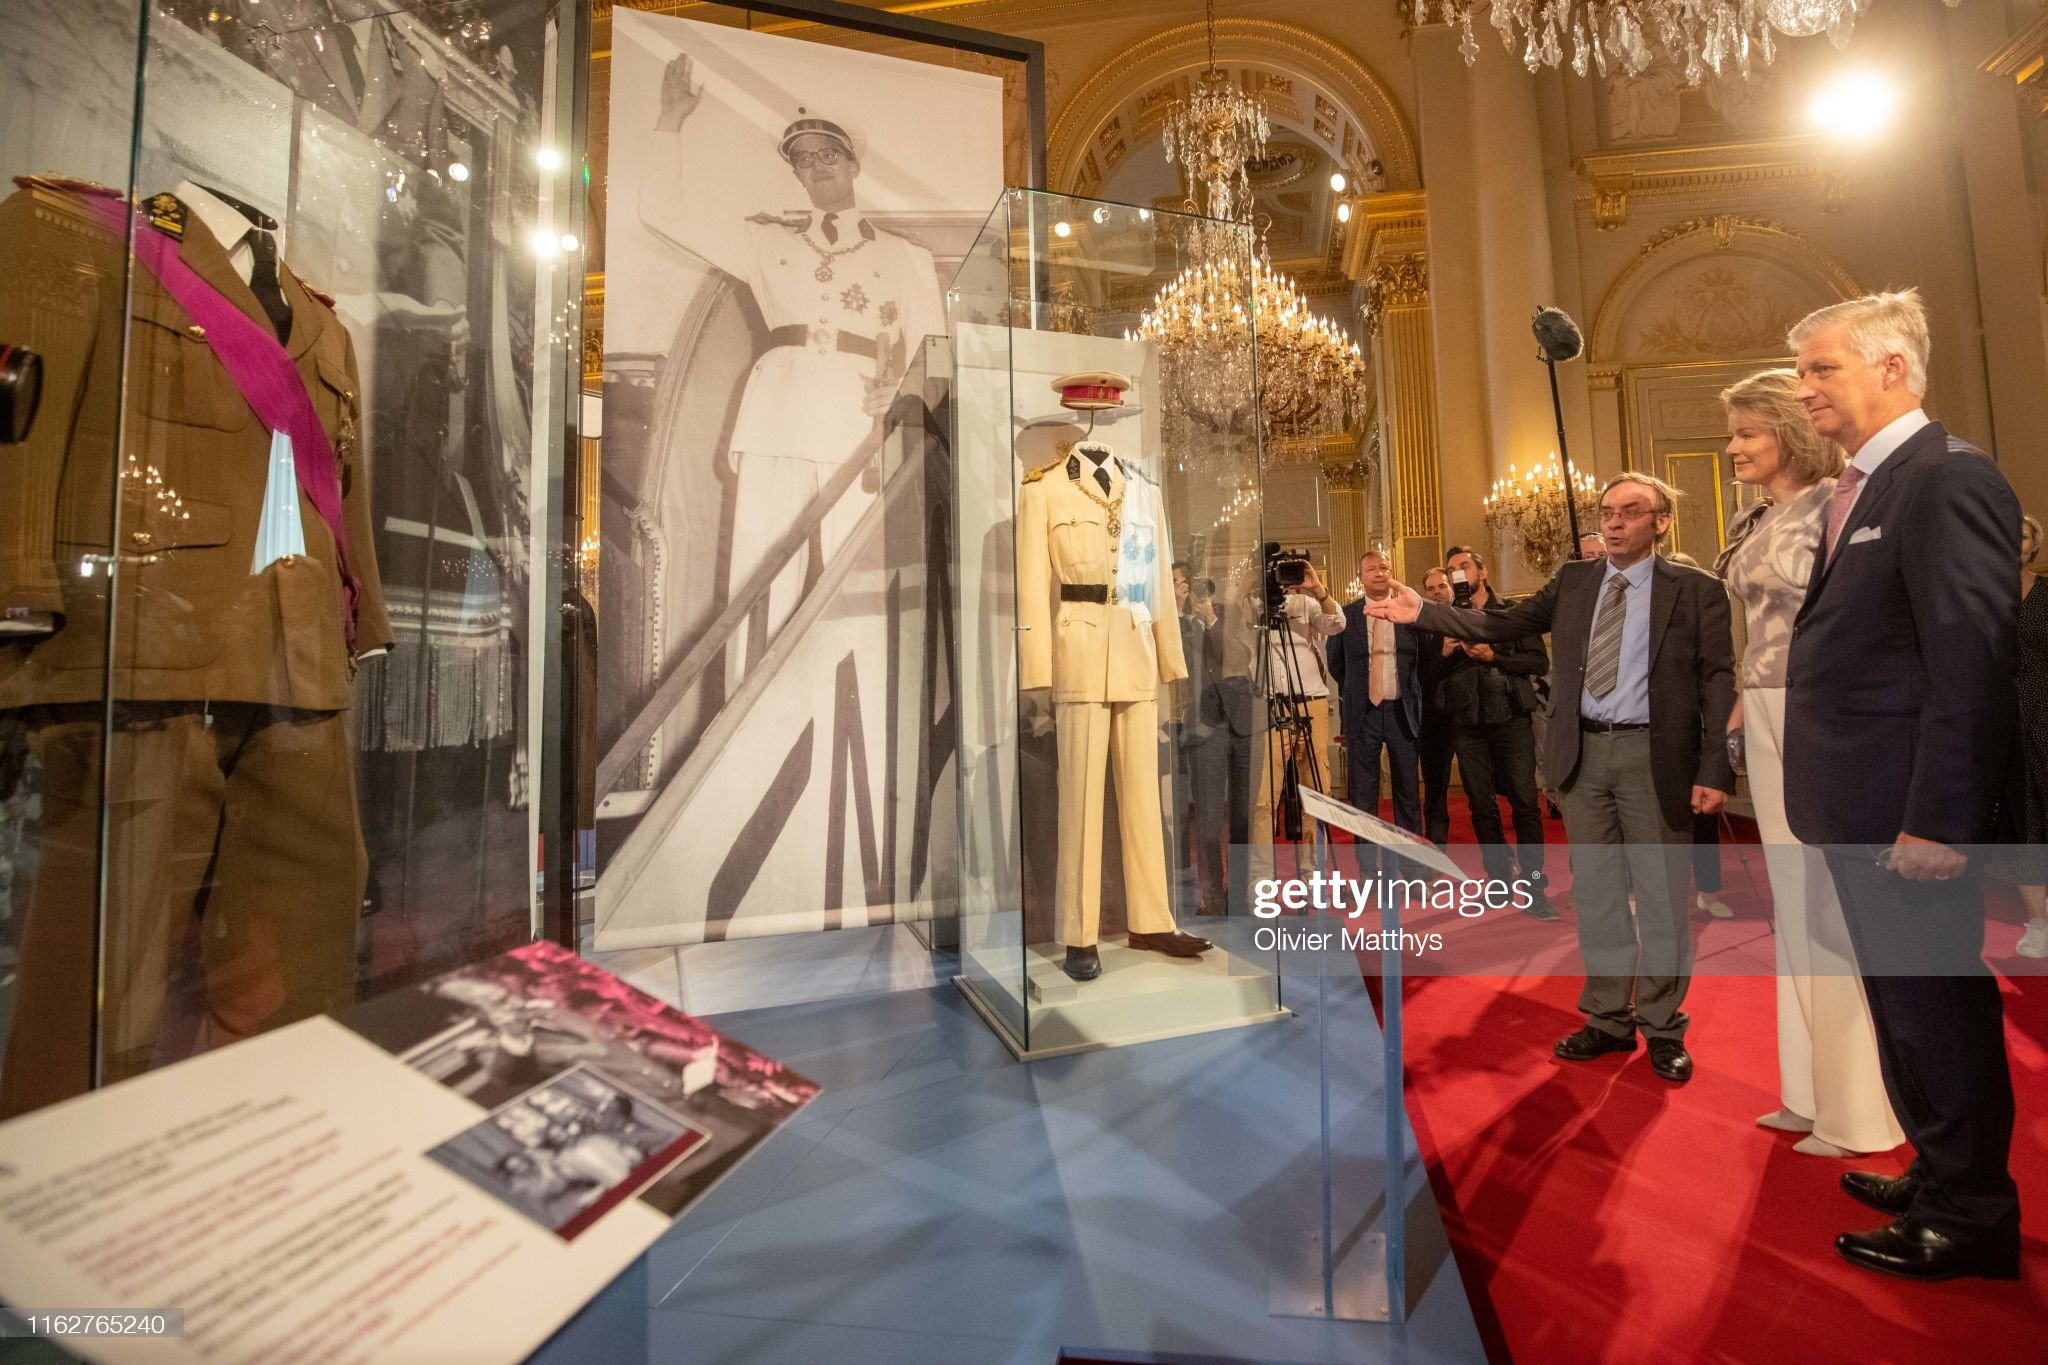 CASA REAL BELGA - Página 54 King-philippe-of-belgium-and-queen-mathilde-look-at-the-white-uniform-picture-id1162765240?s=2048x2048